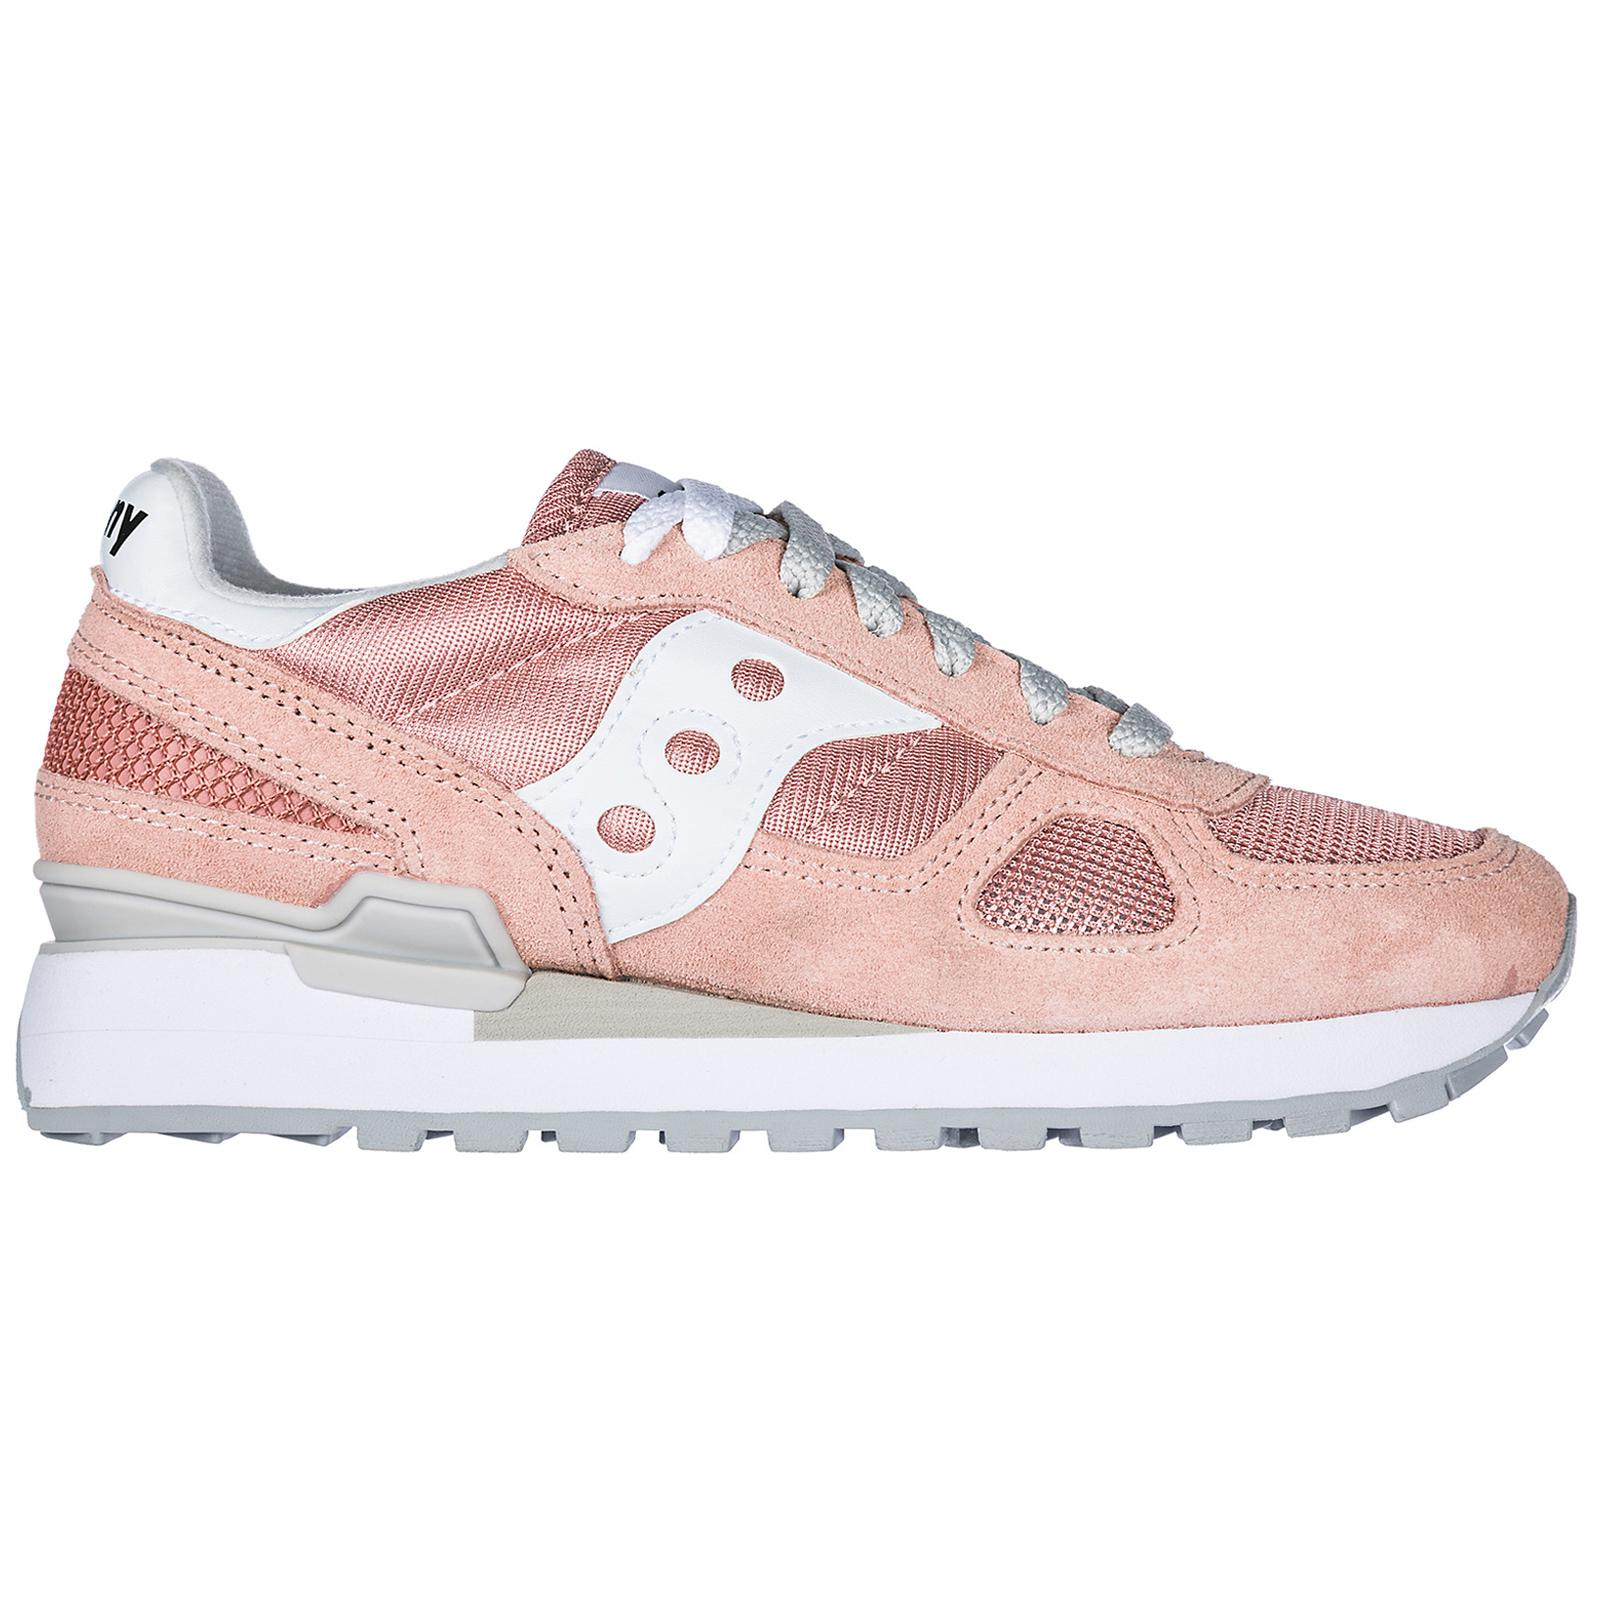 Saucony Shoes Suede Trainers Sneakers Shadow Original in Pink - Lyst a28551dfb36